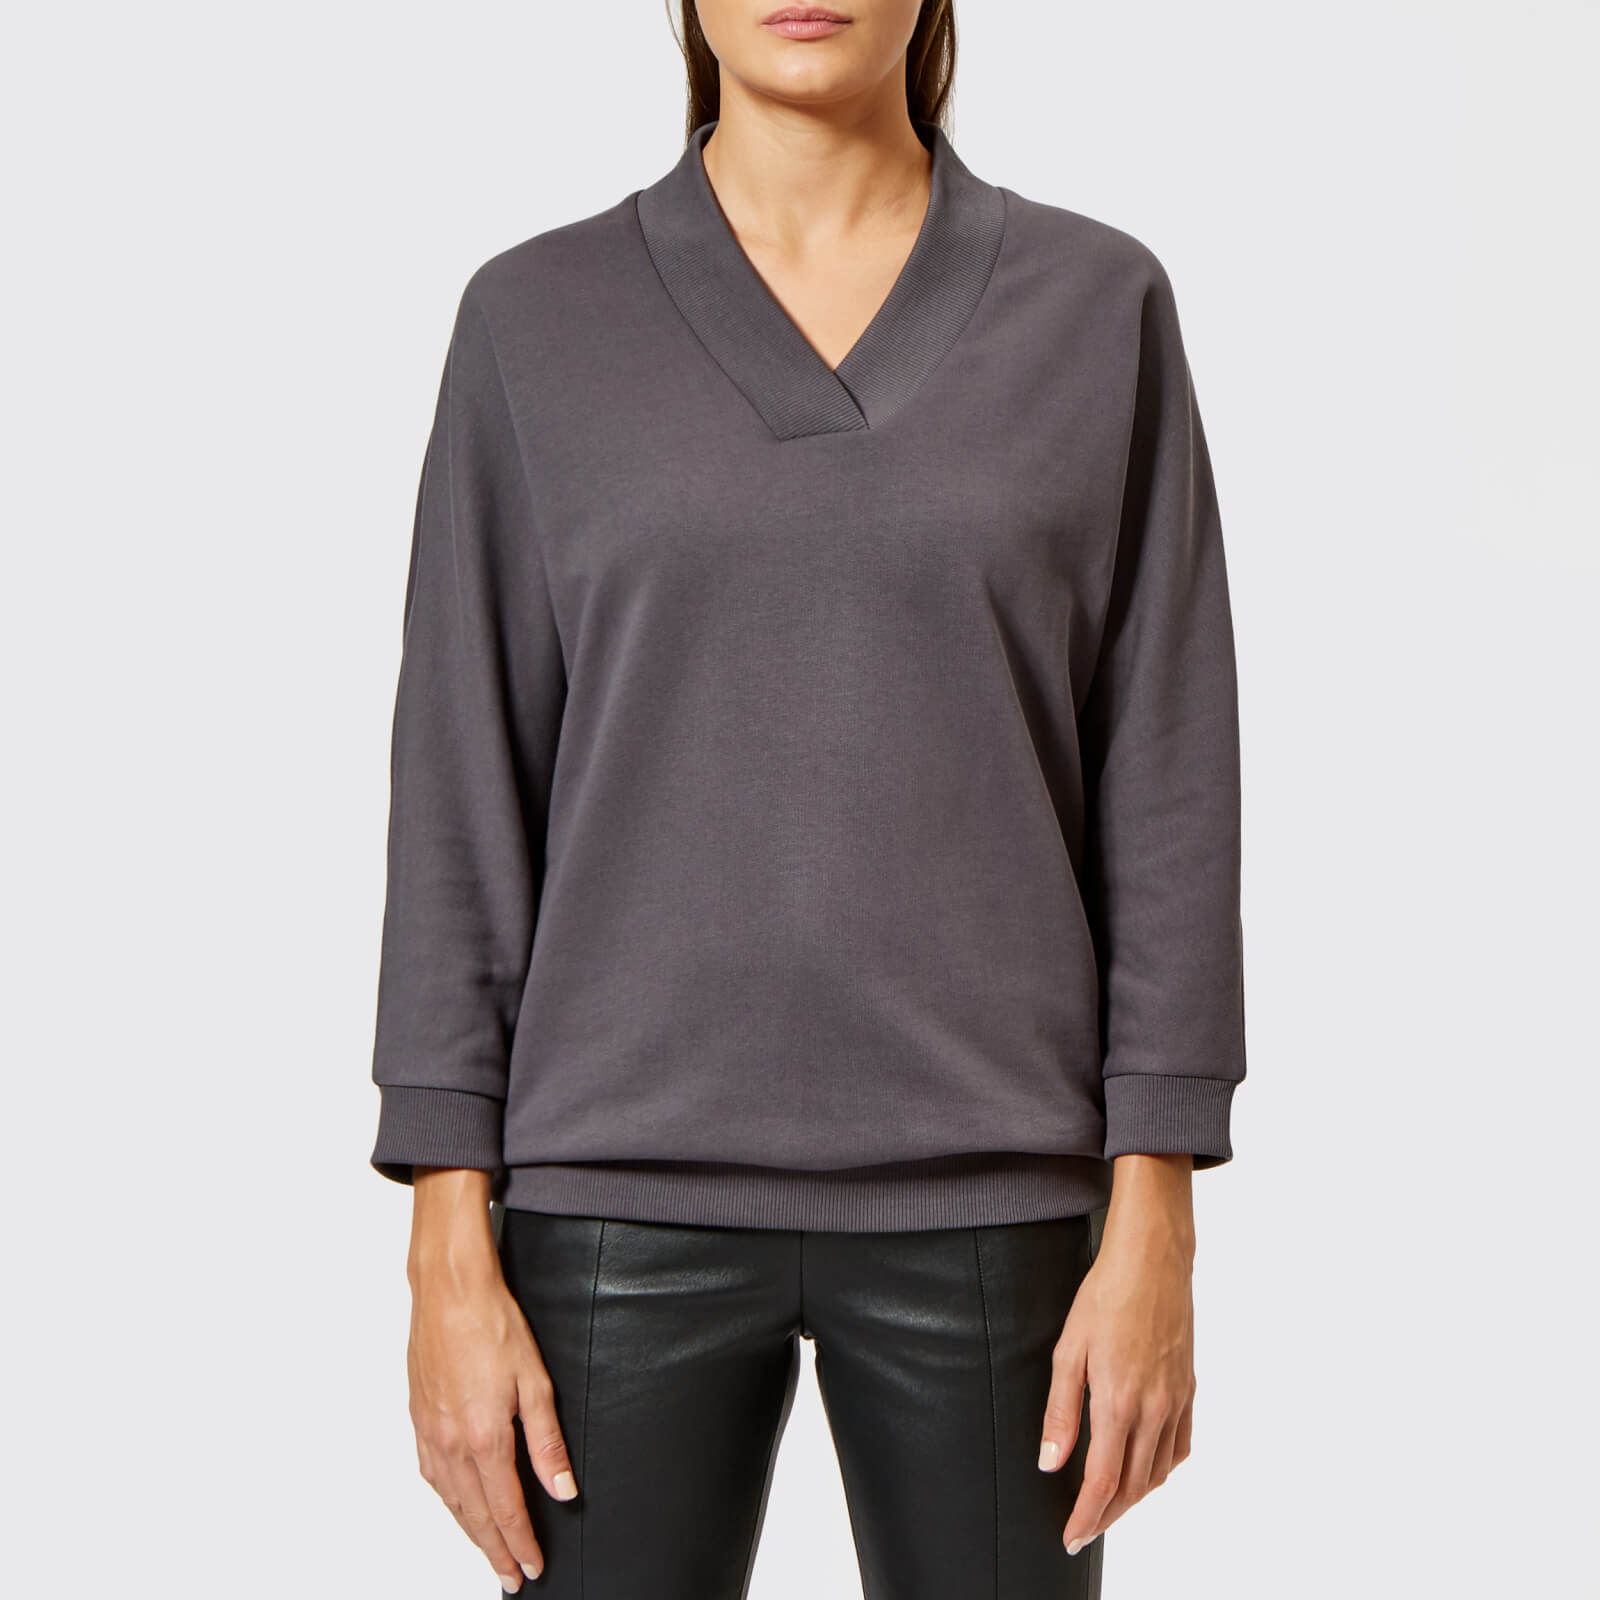 00c8611b KENZO Women's Light Cotton Molleton Sweatshirt - Grey - Free UK ...